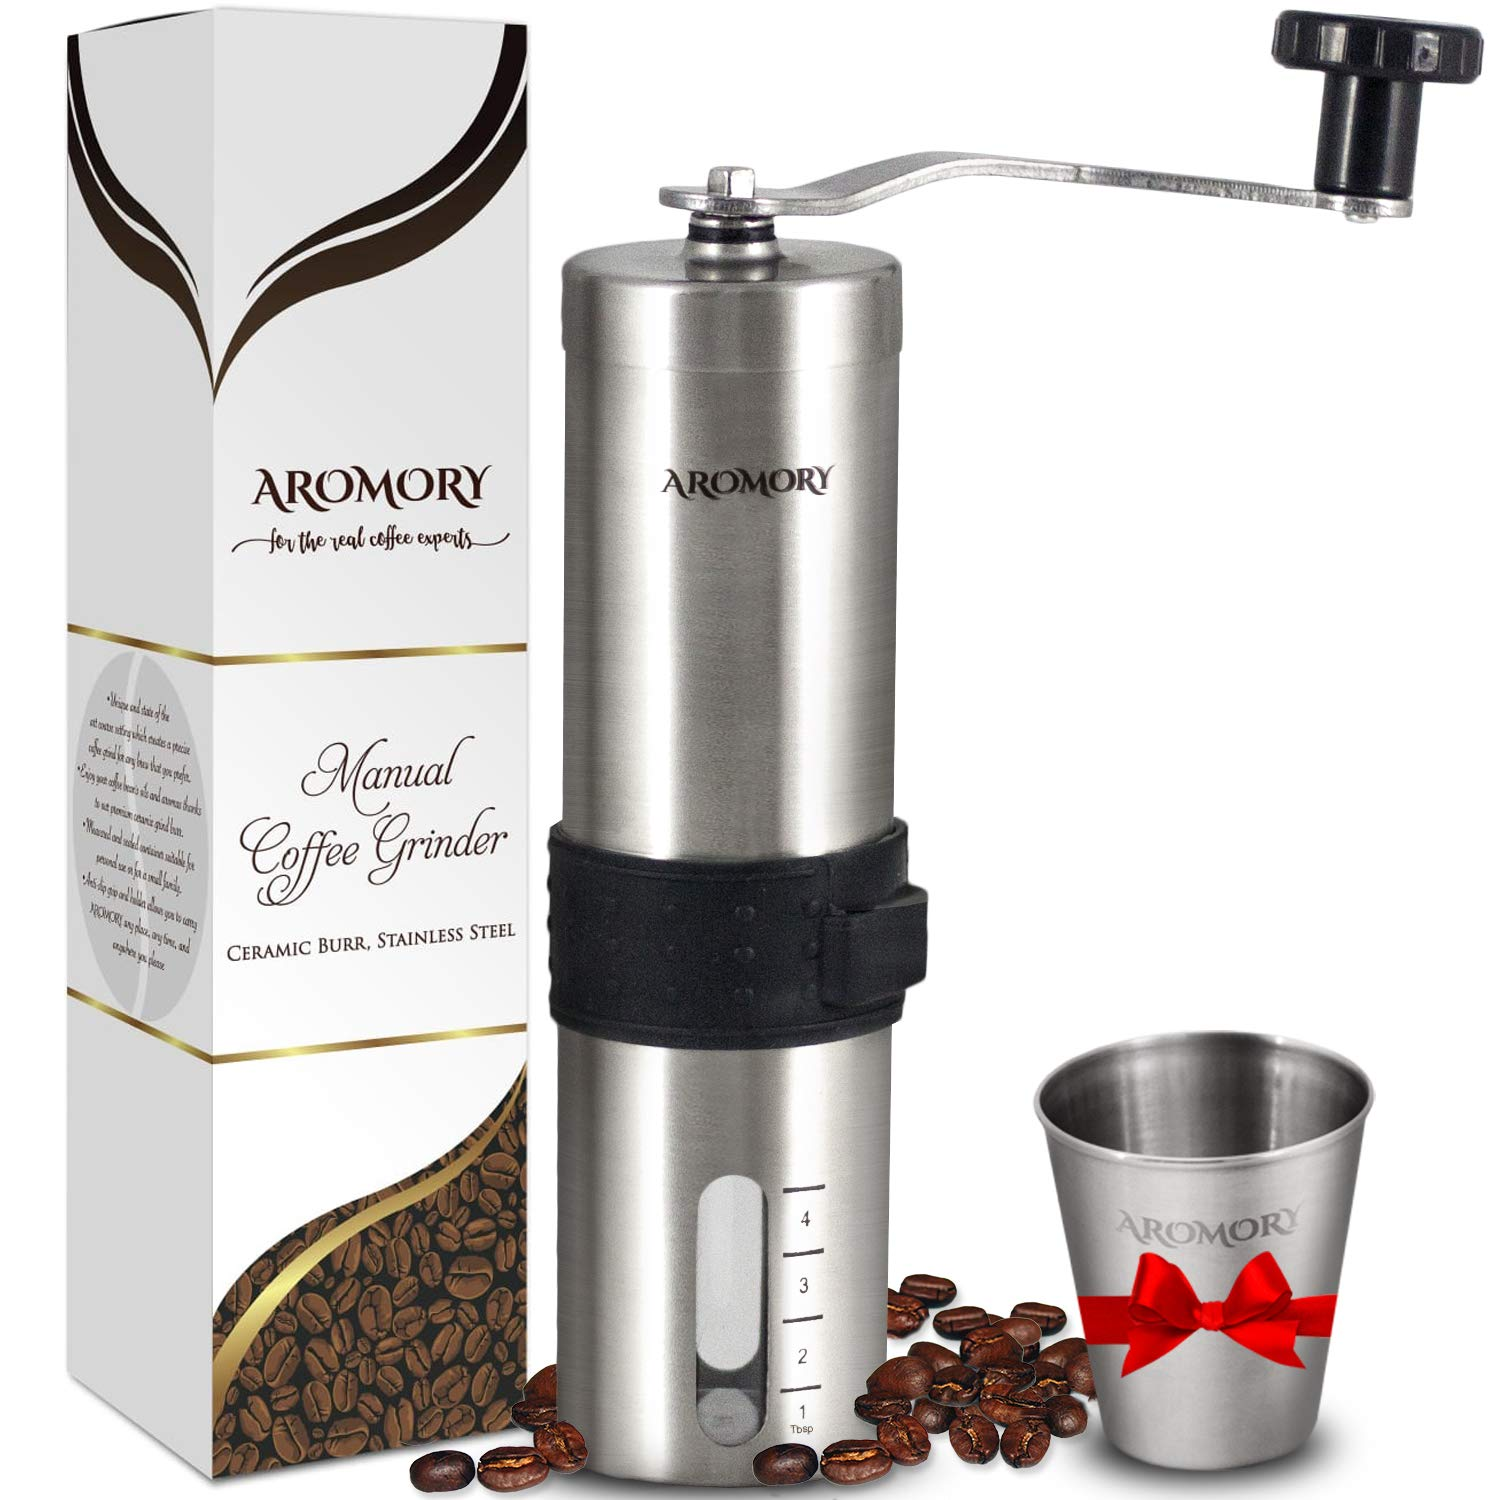 Manual Coffee Bean Grinder, Hand Held Conical Ceramic Burr Mill for Precision Brewing, Portable, Brushed Stainless Steel- Heavy Duty For K-cup, Espresso, French Press, Turkish- Free Bonus Gift by AROMORY